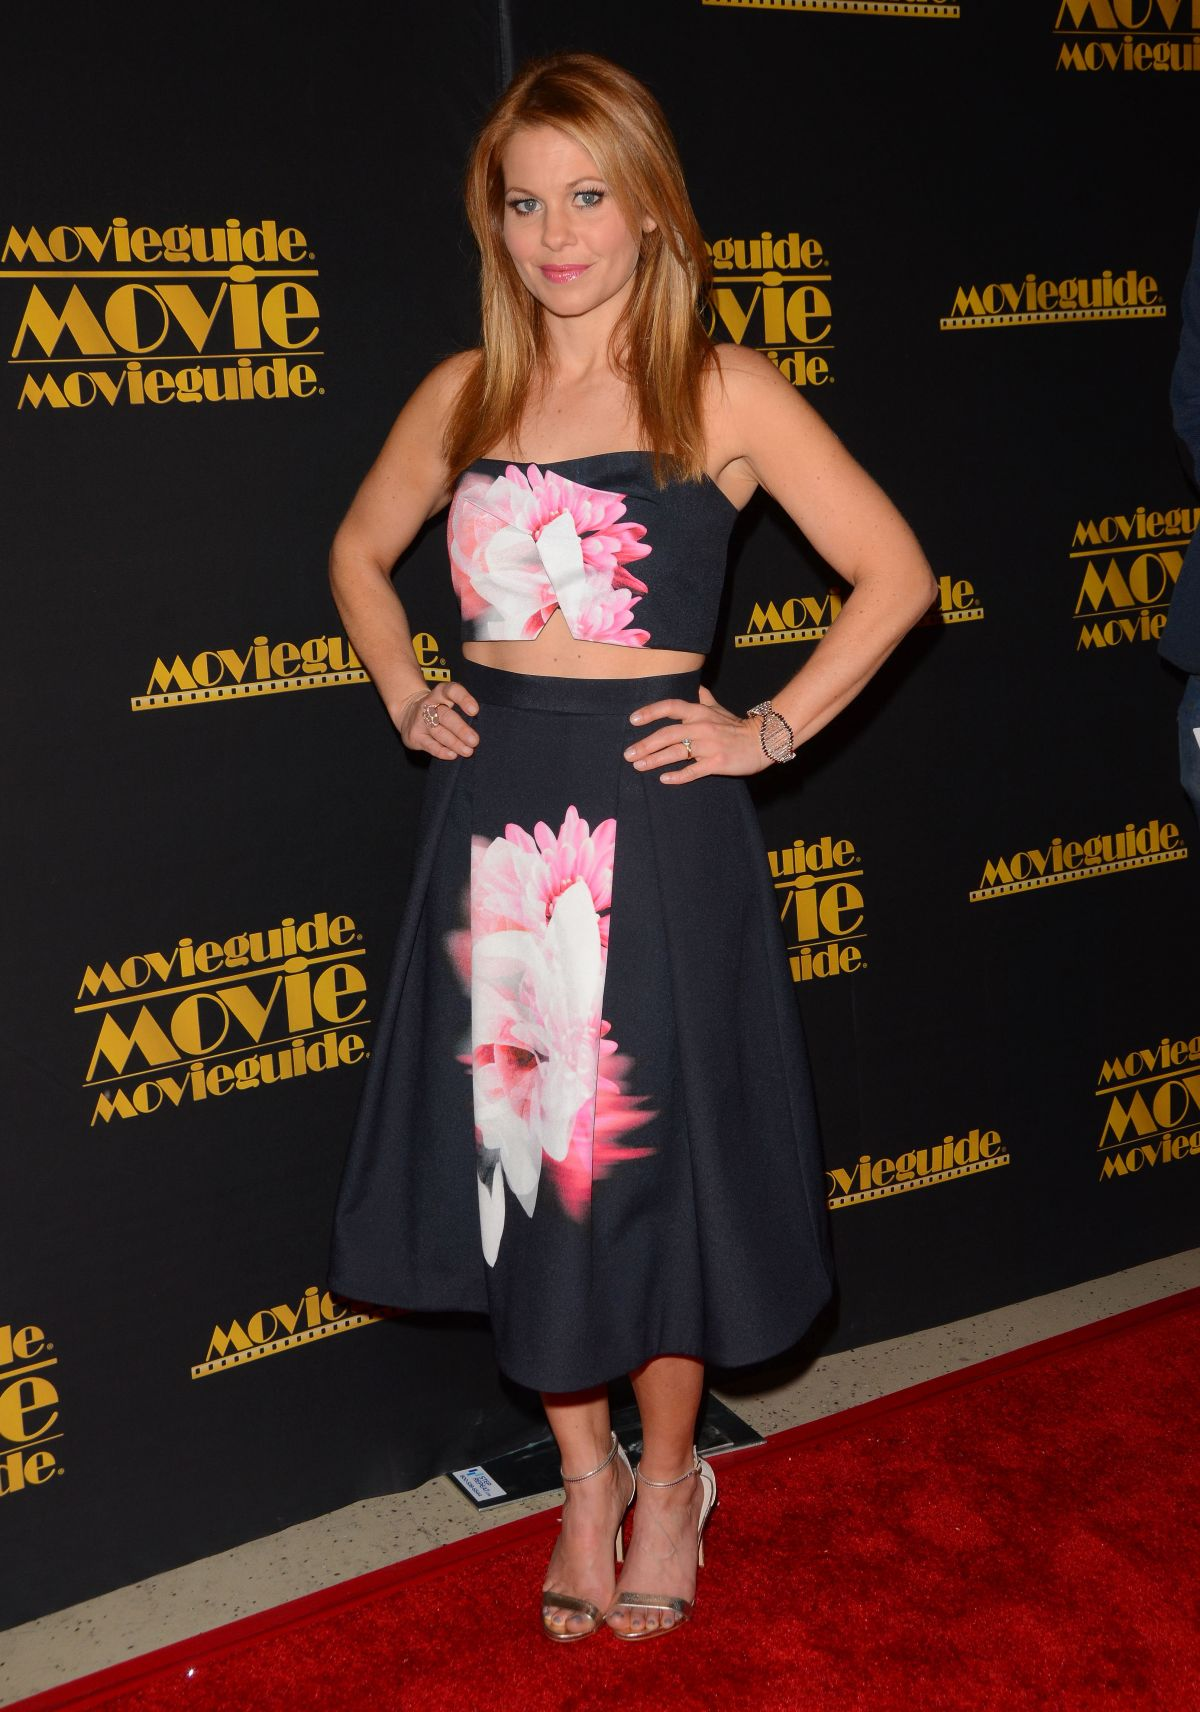 CANDACE CAMERON BURE at 2015 Movieguide Awards in Universal City